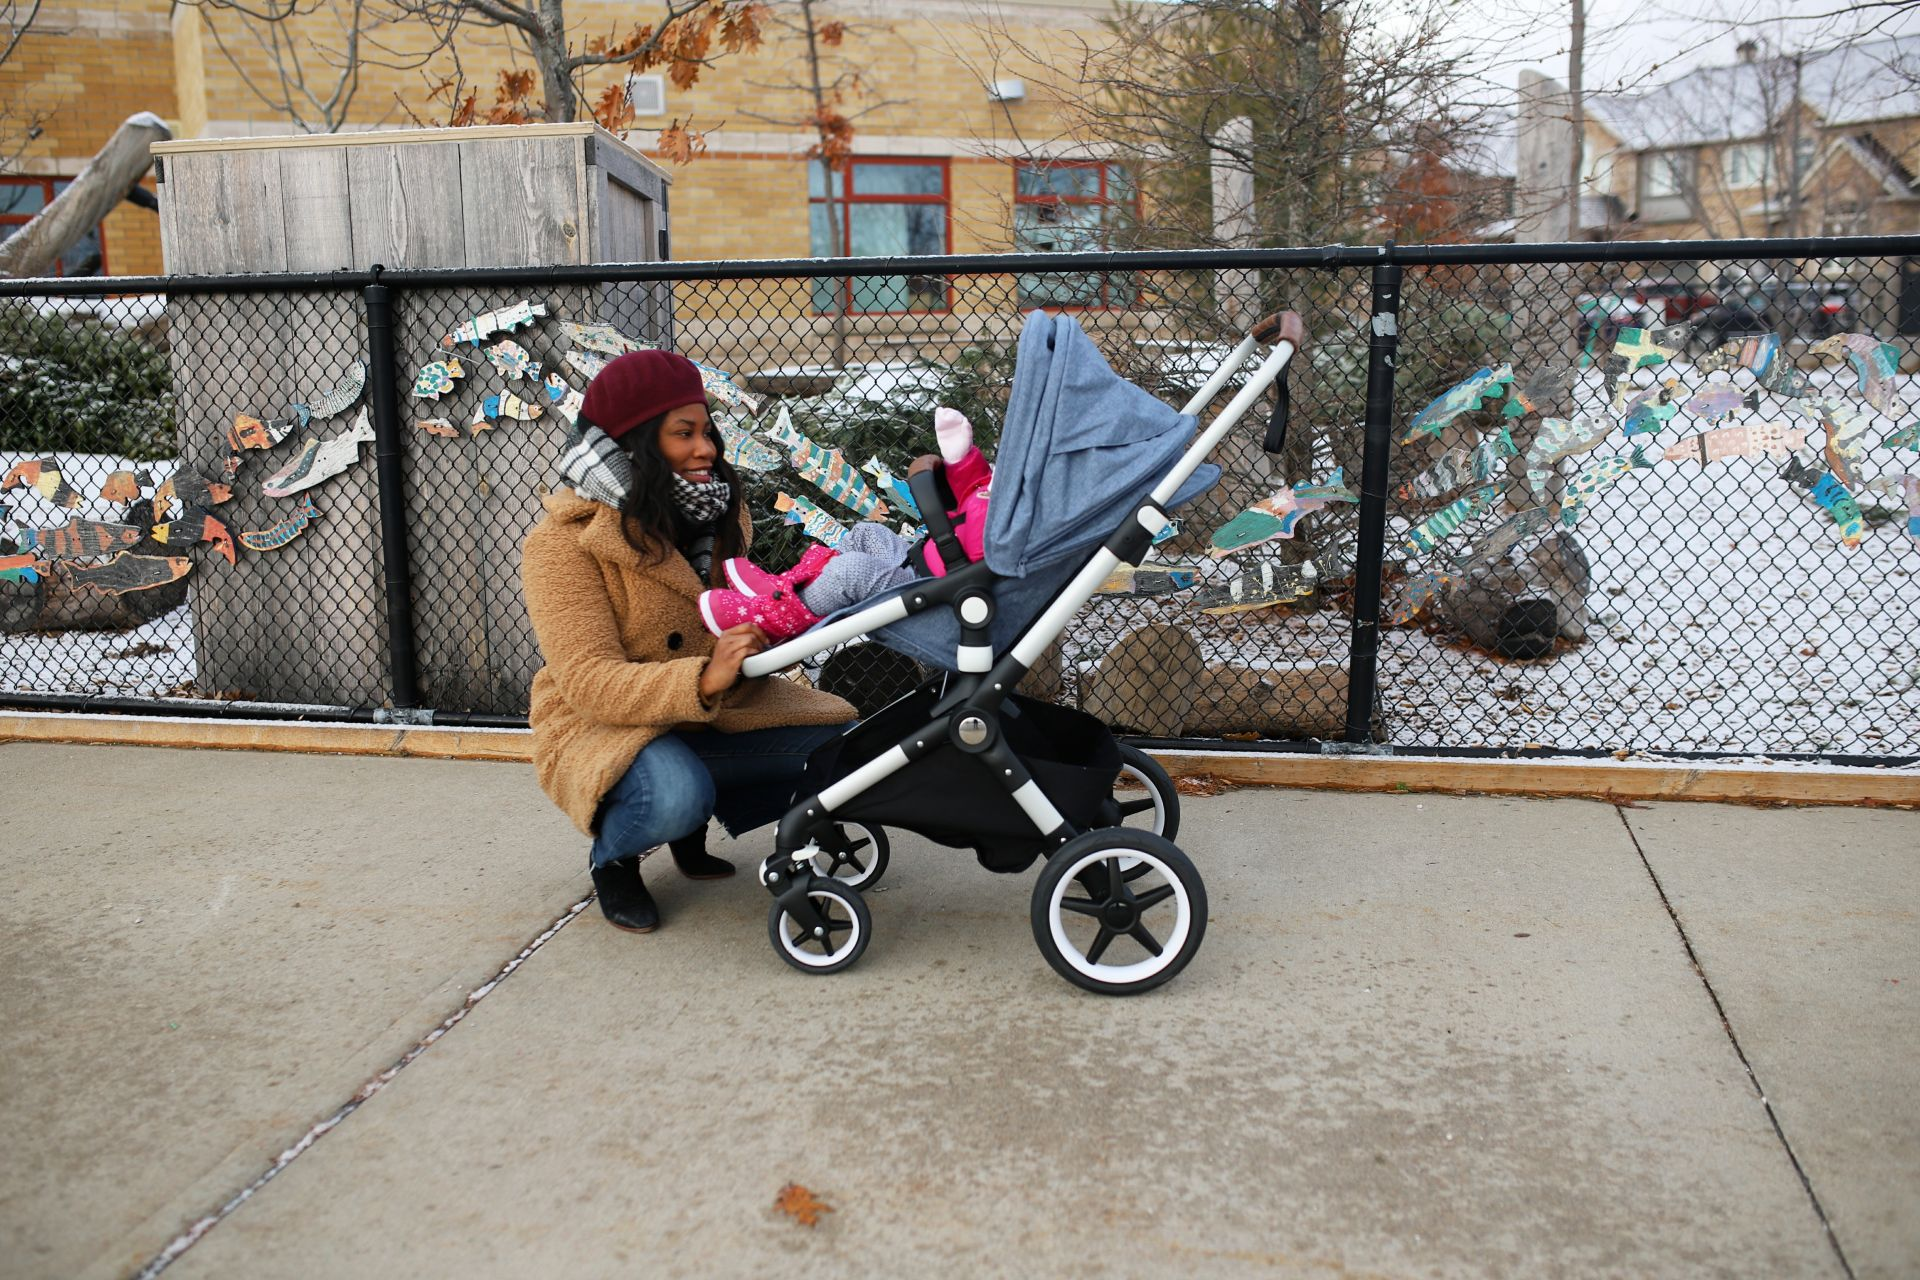 Bugaboo Lynx Stroller Review: Worth the Hype?